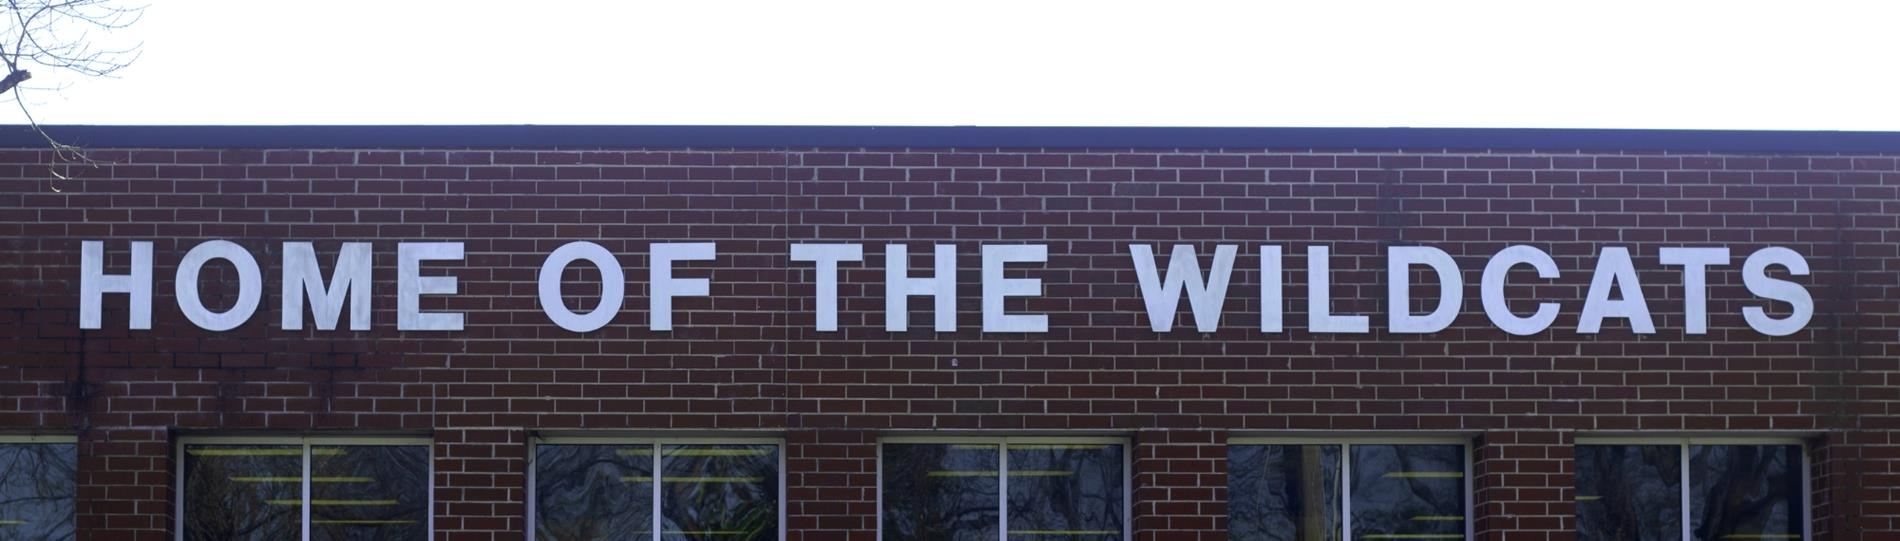 Home of the Wildcats